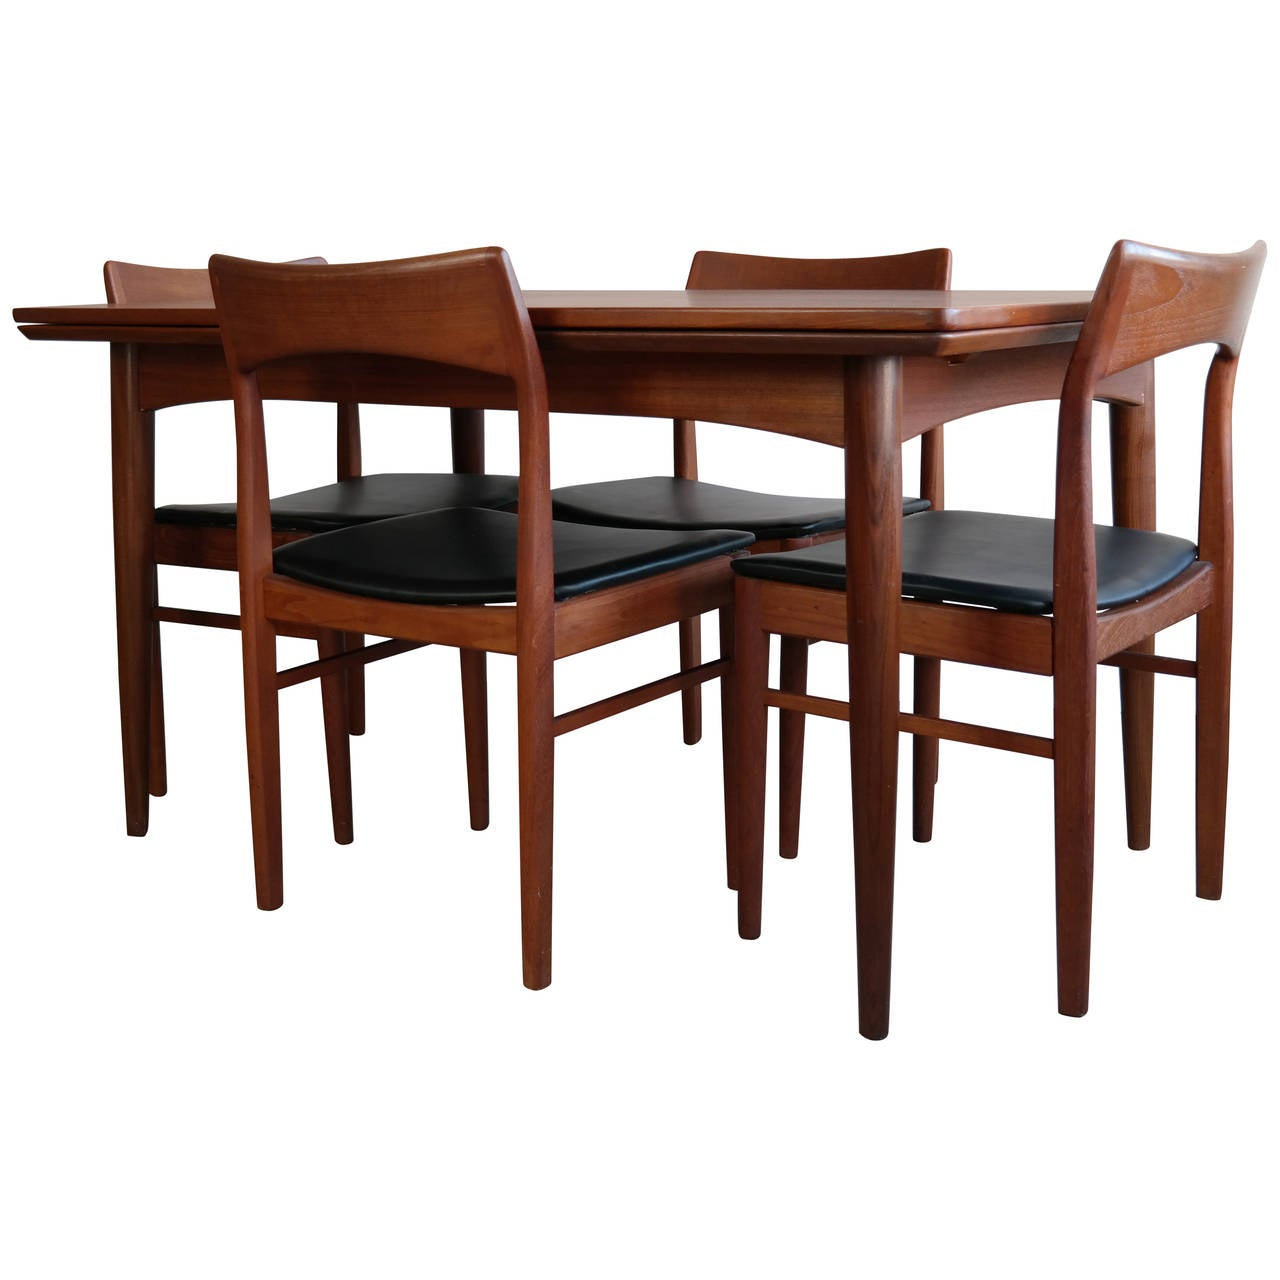 Danish modern dining set in teak at 1stdibs for Danish modern dining room table